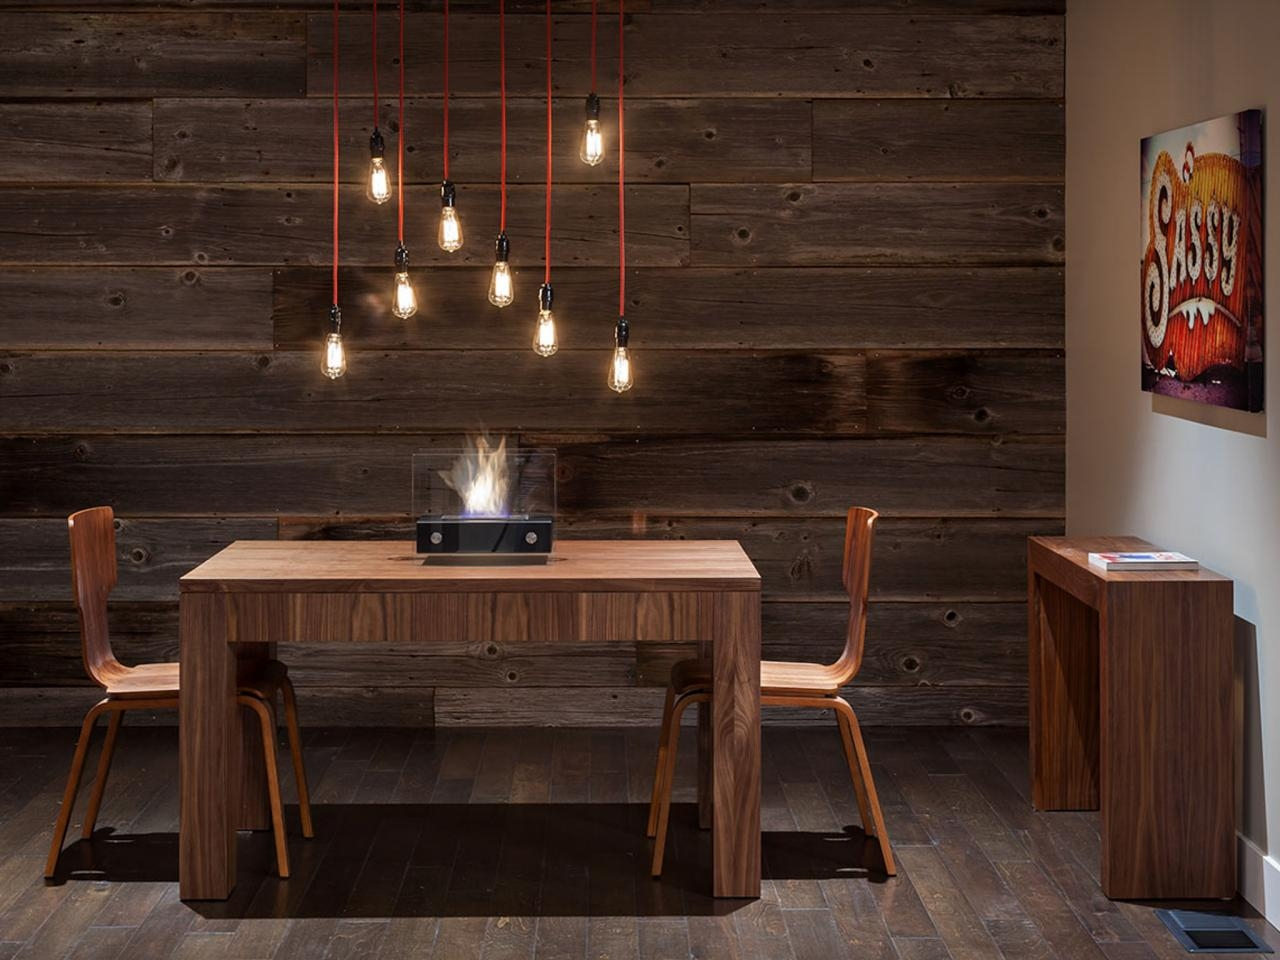 Dining Room Hanging Light Bulbs Ideas For Decorating With Hanging